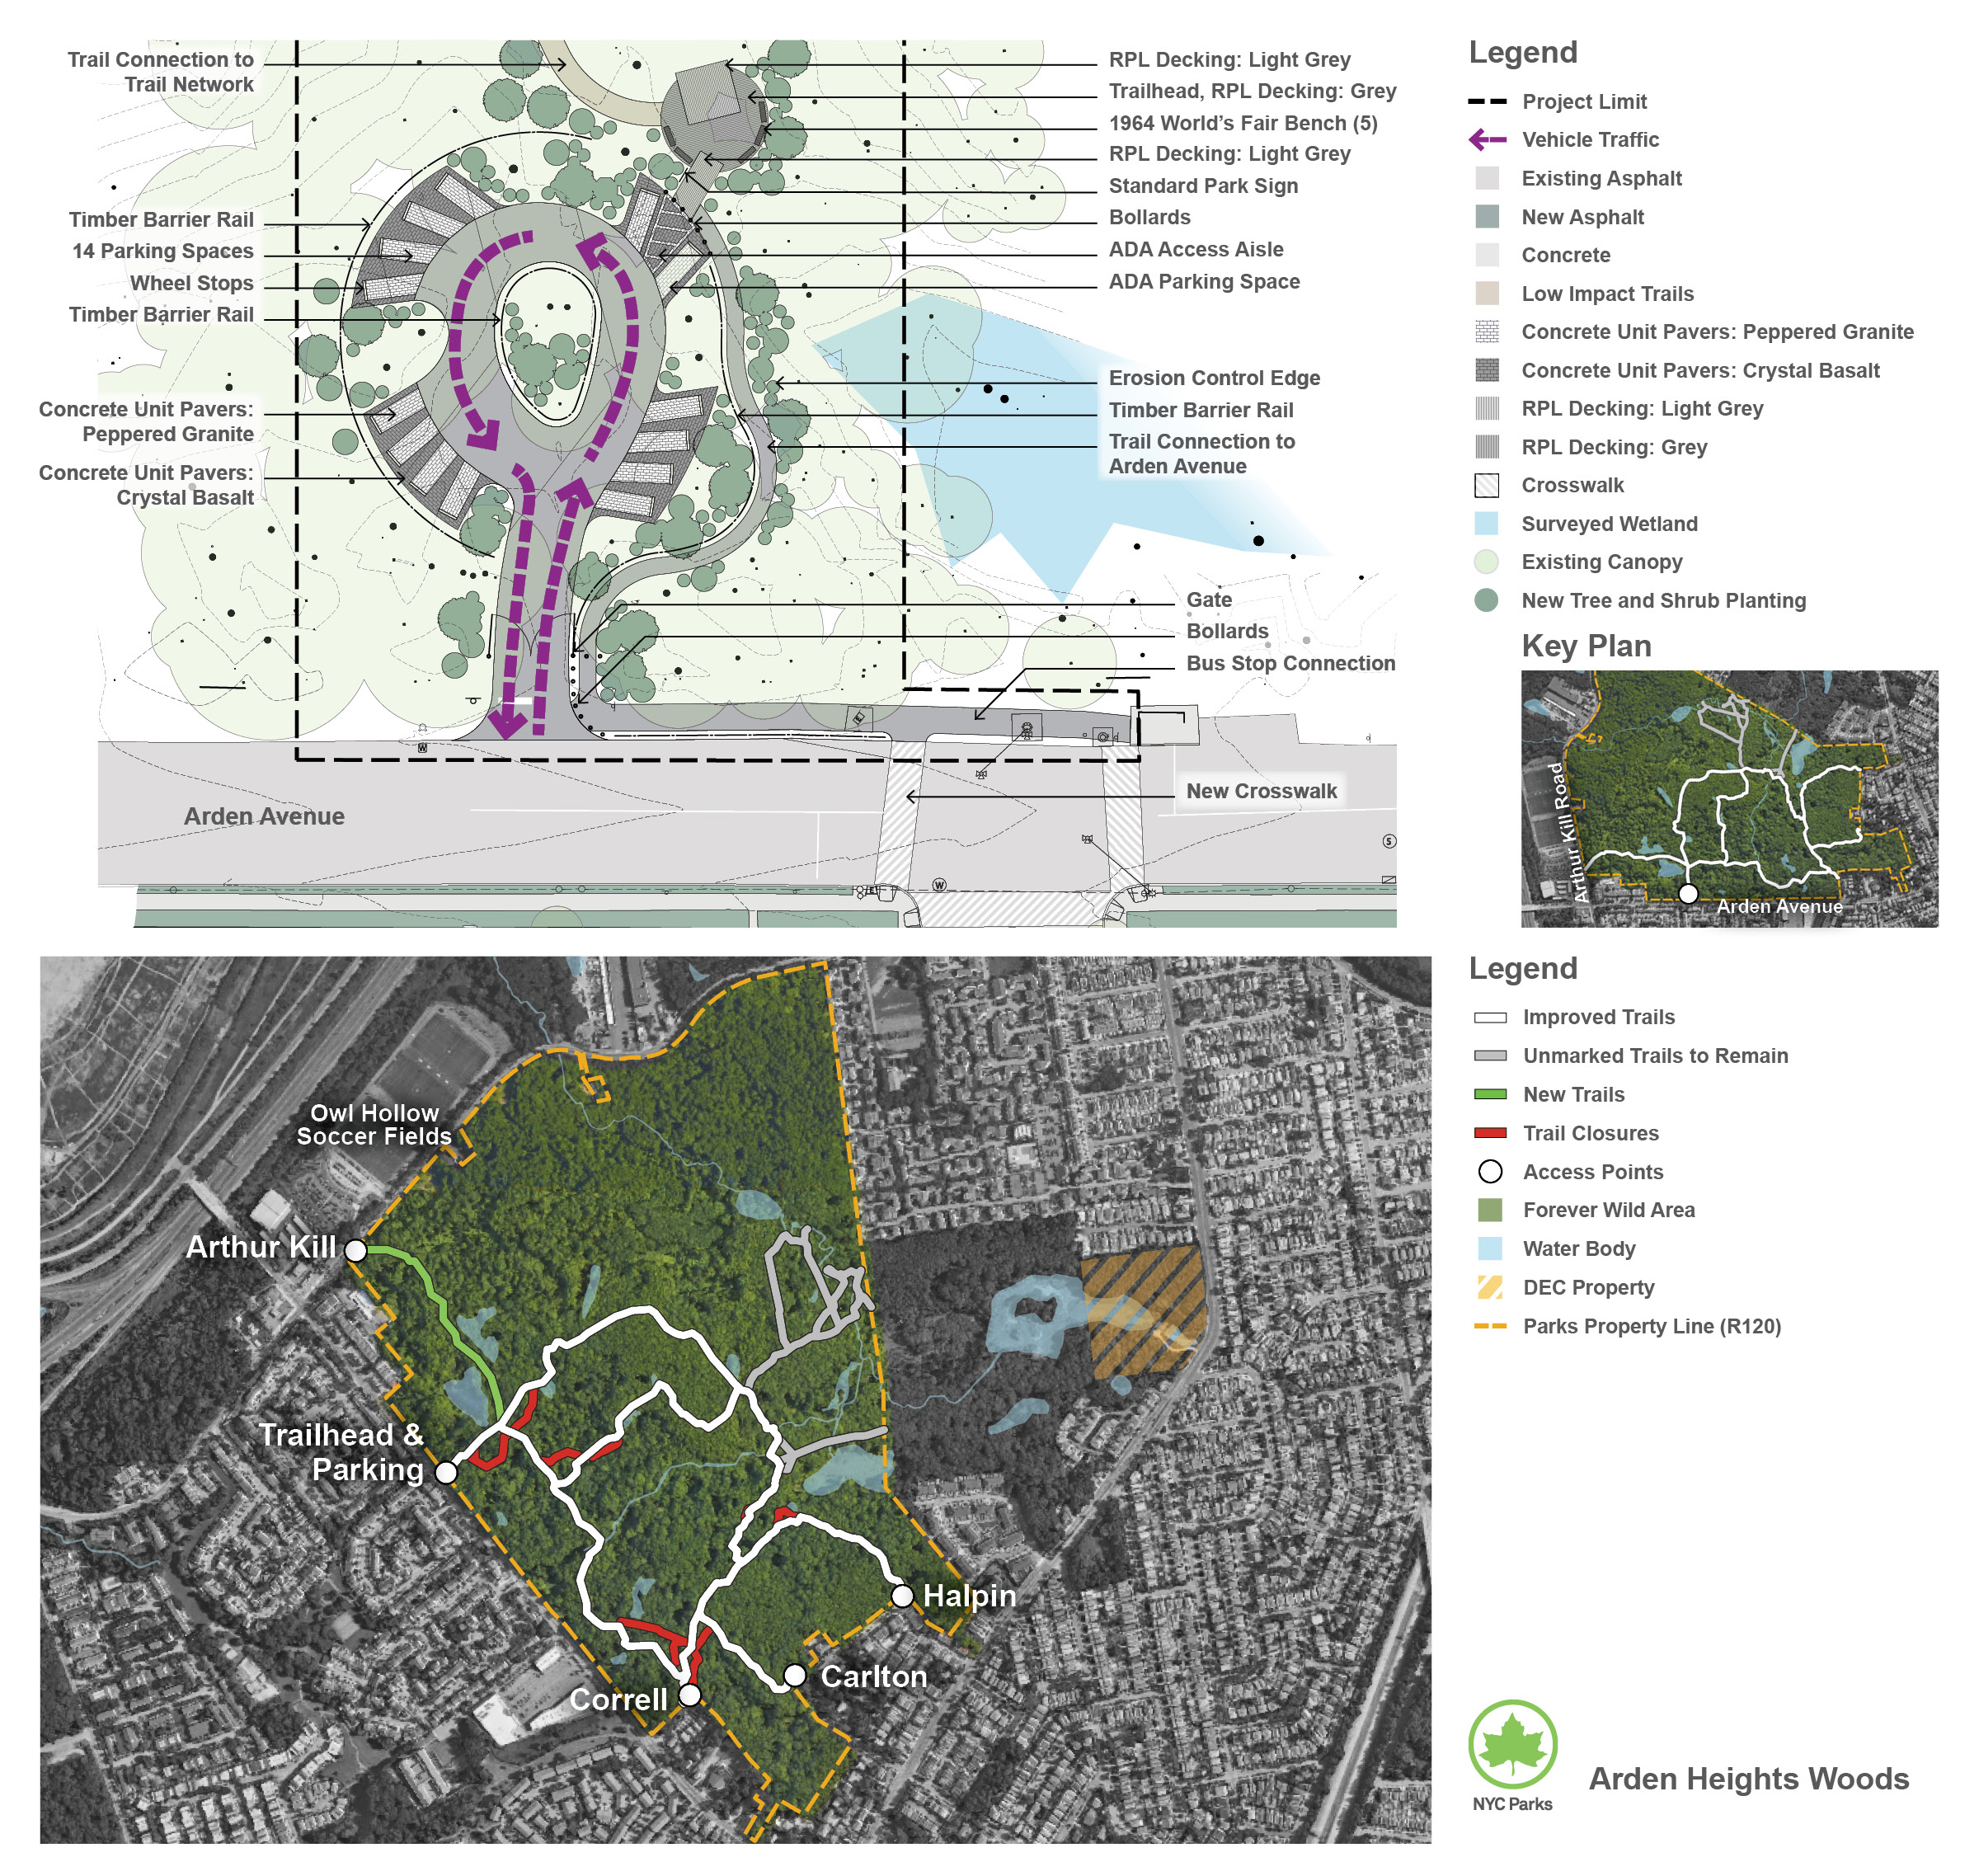 Design of Arden Heights Woods Trailhead Parking Construction and Trail Improvements